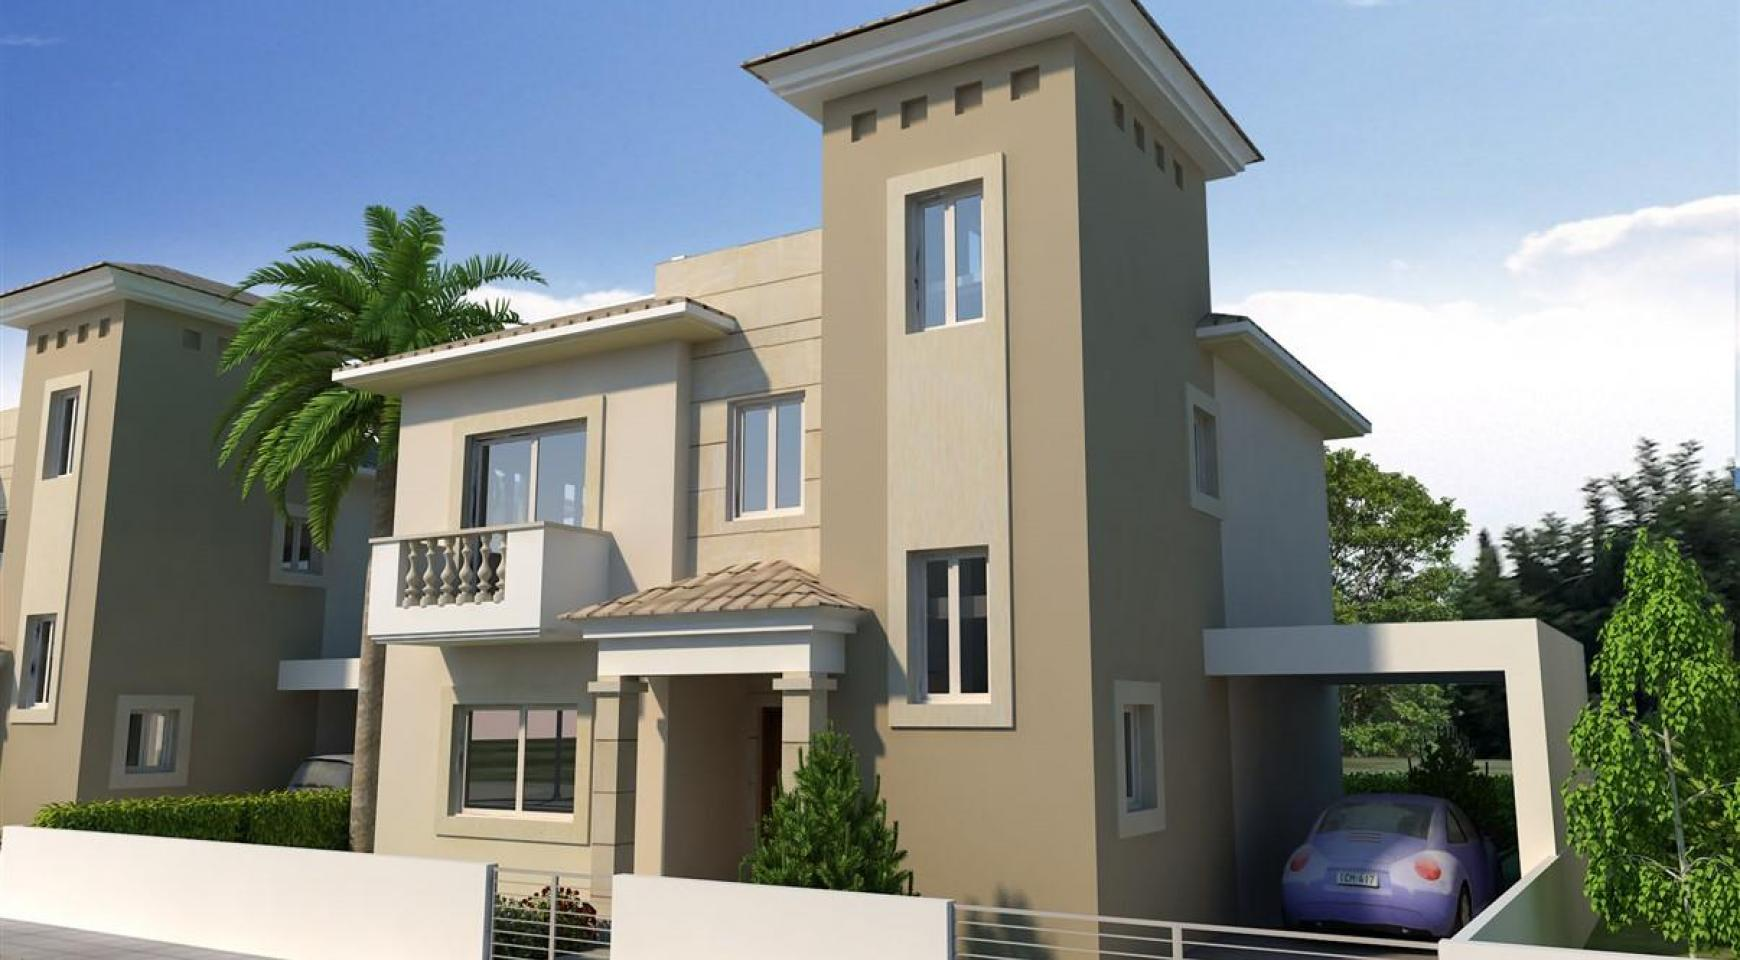 3 Bedroom Villa in New Project in Paphos - 15